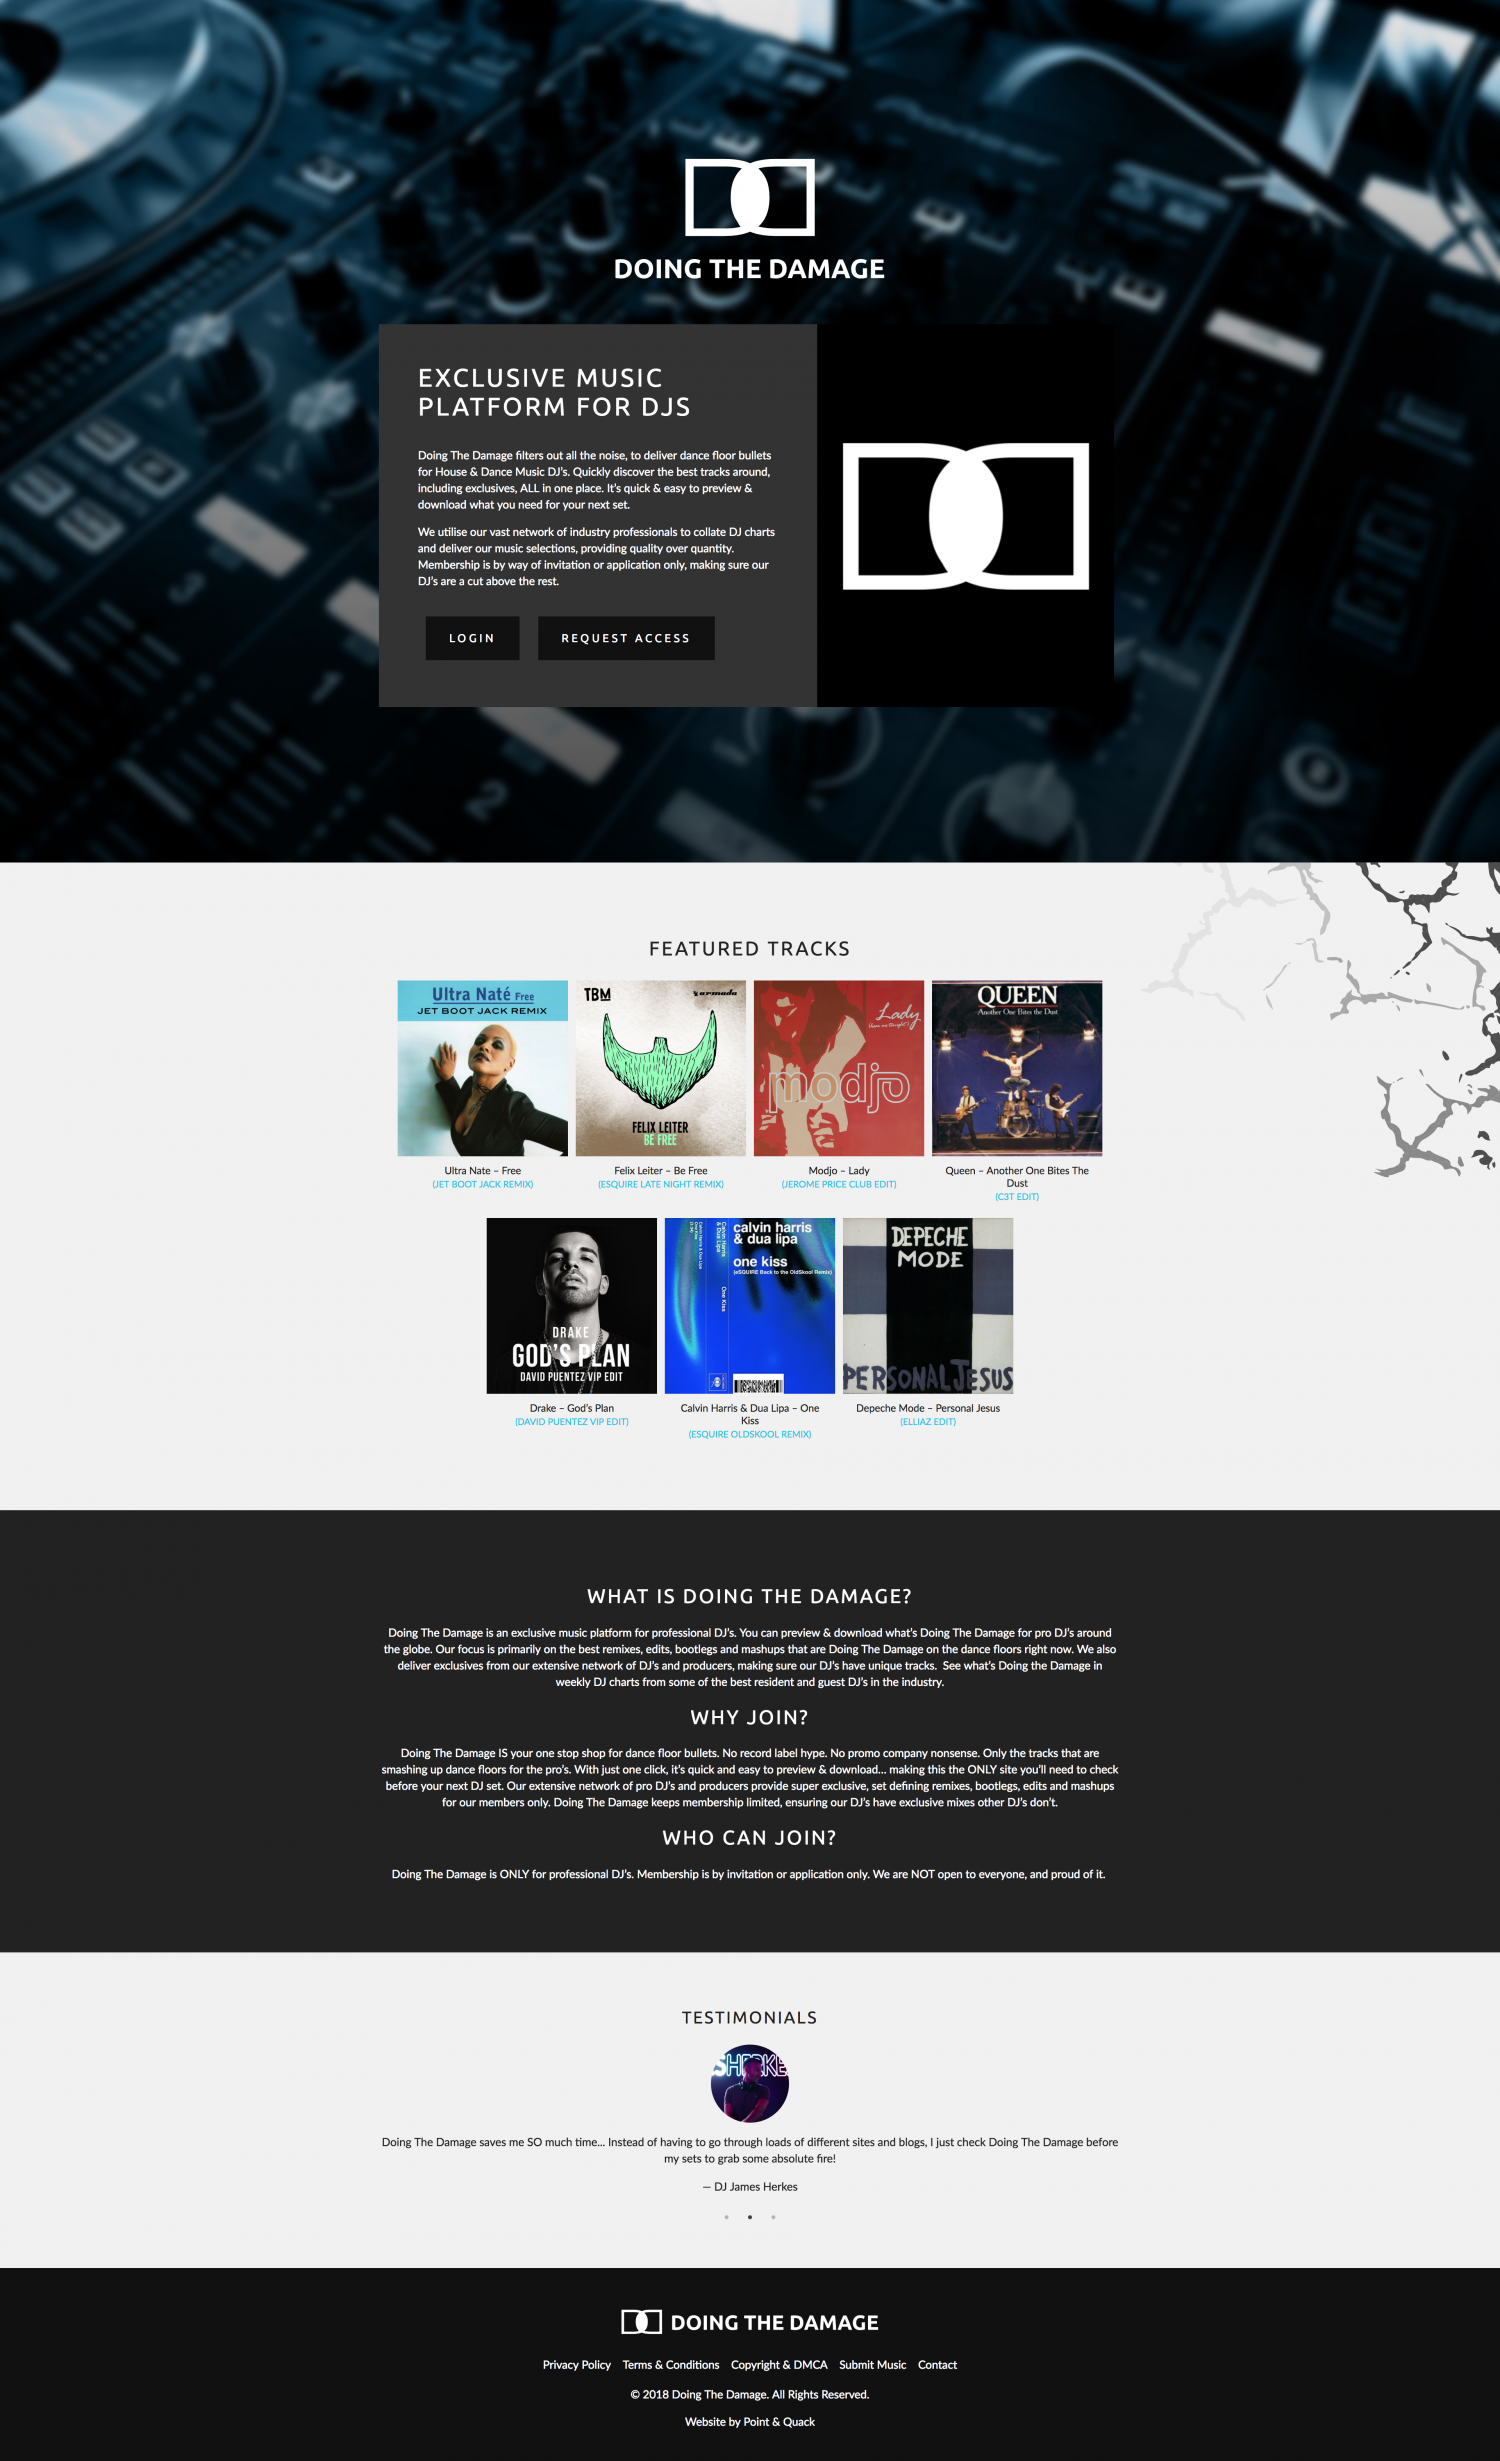 Landing page view to encourage interests